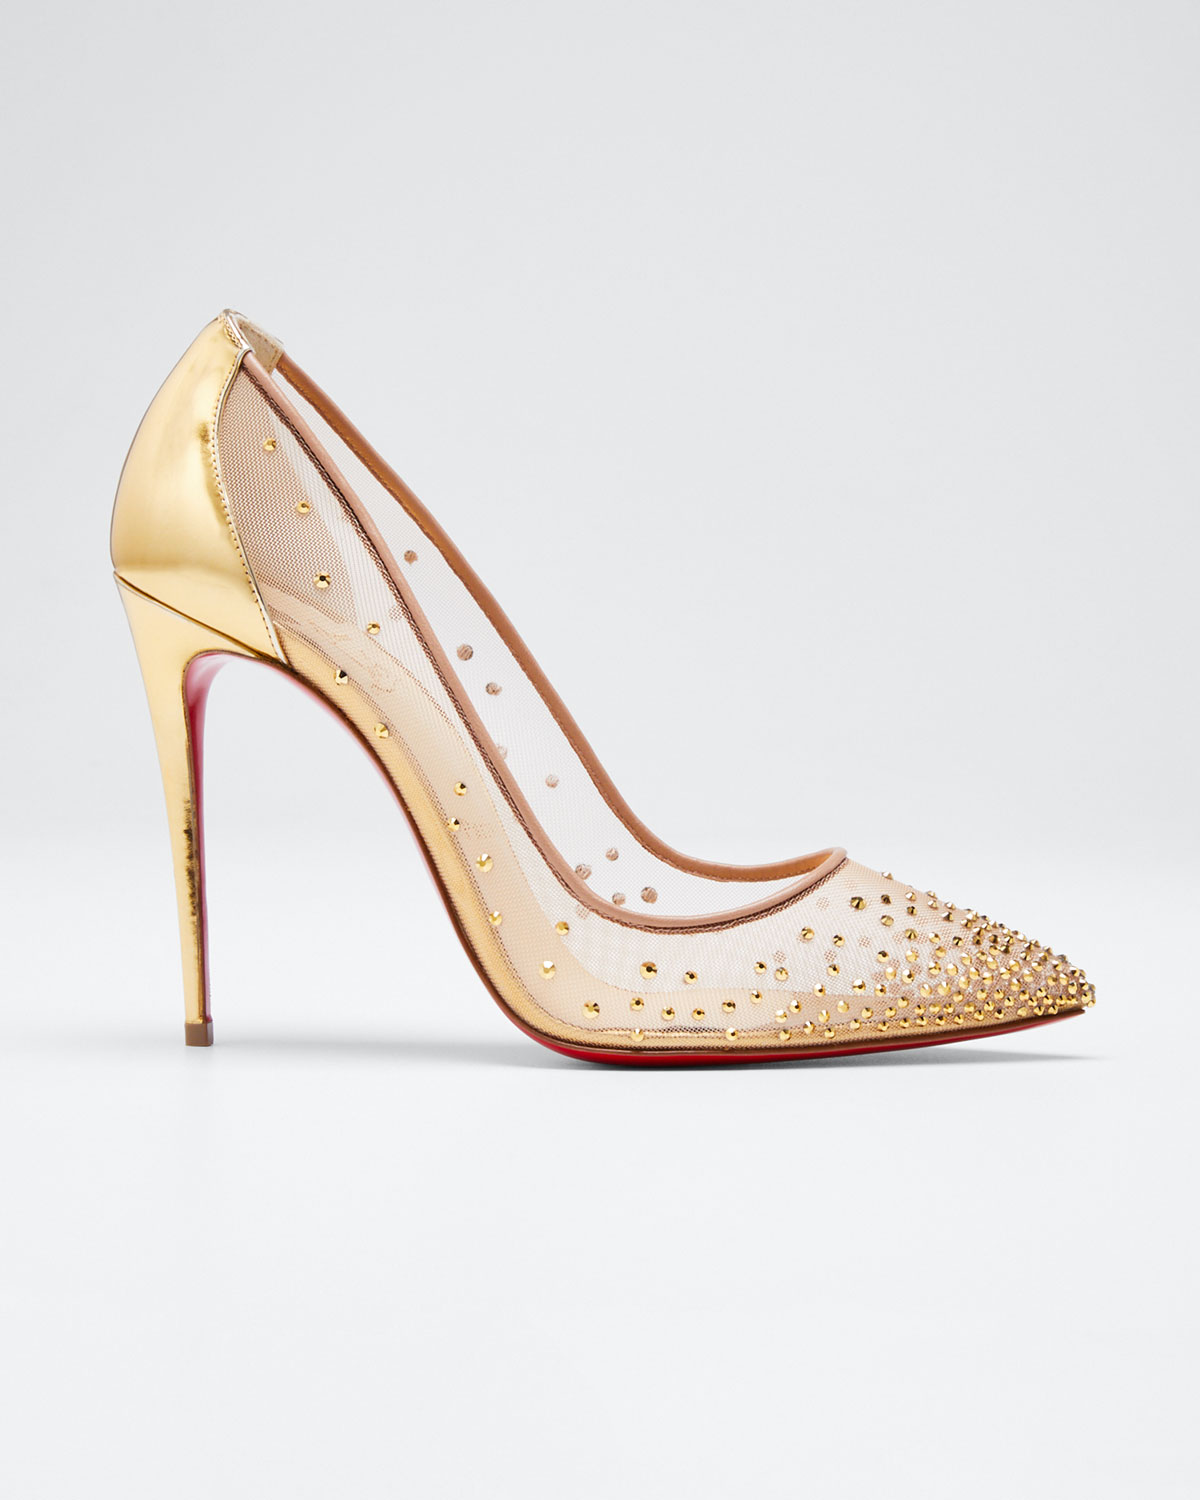 CHRISTIAN LOUBOUTIN FOLLIES STRASS CRYSTAL MESH RED SOLE PUMP